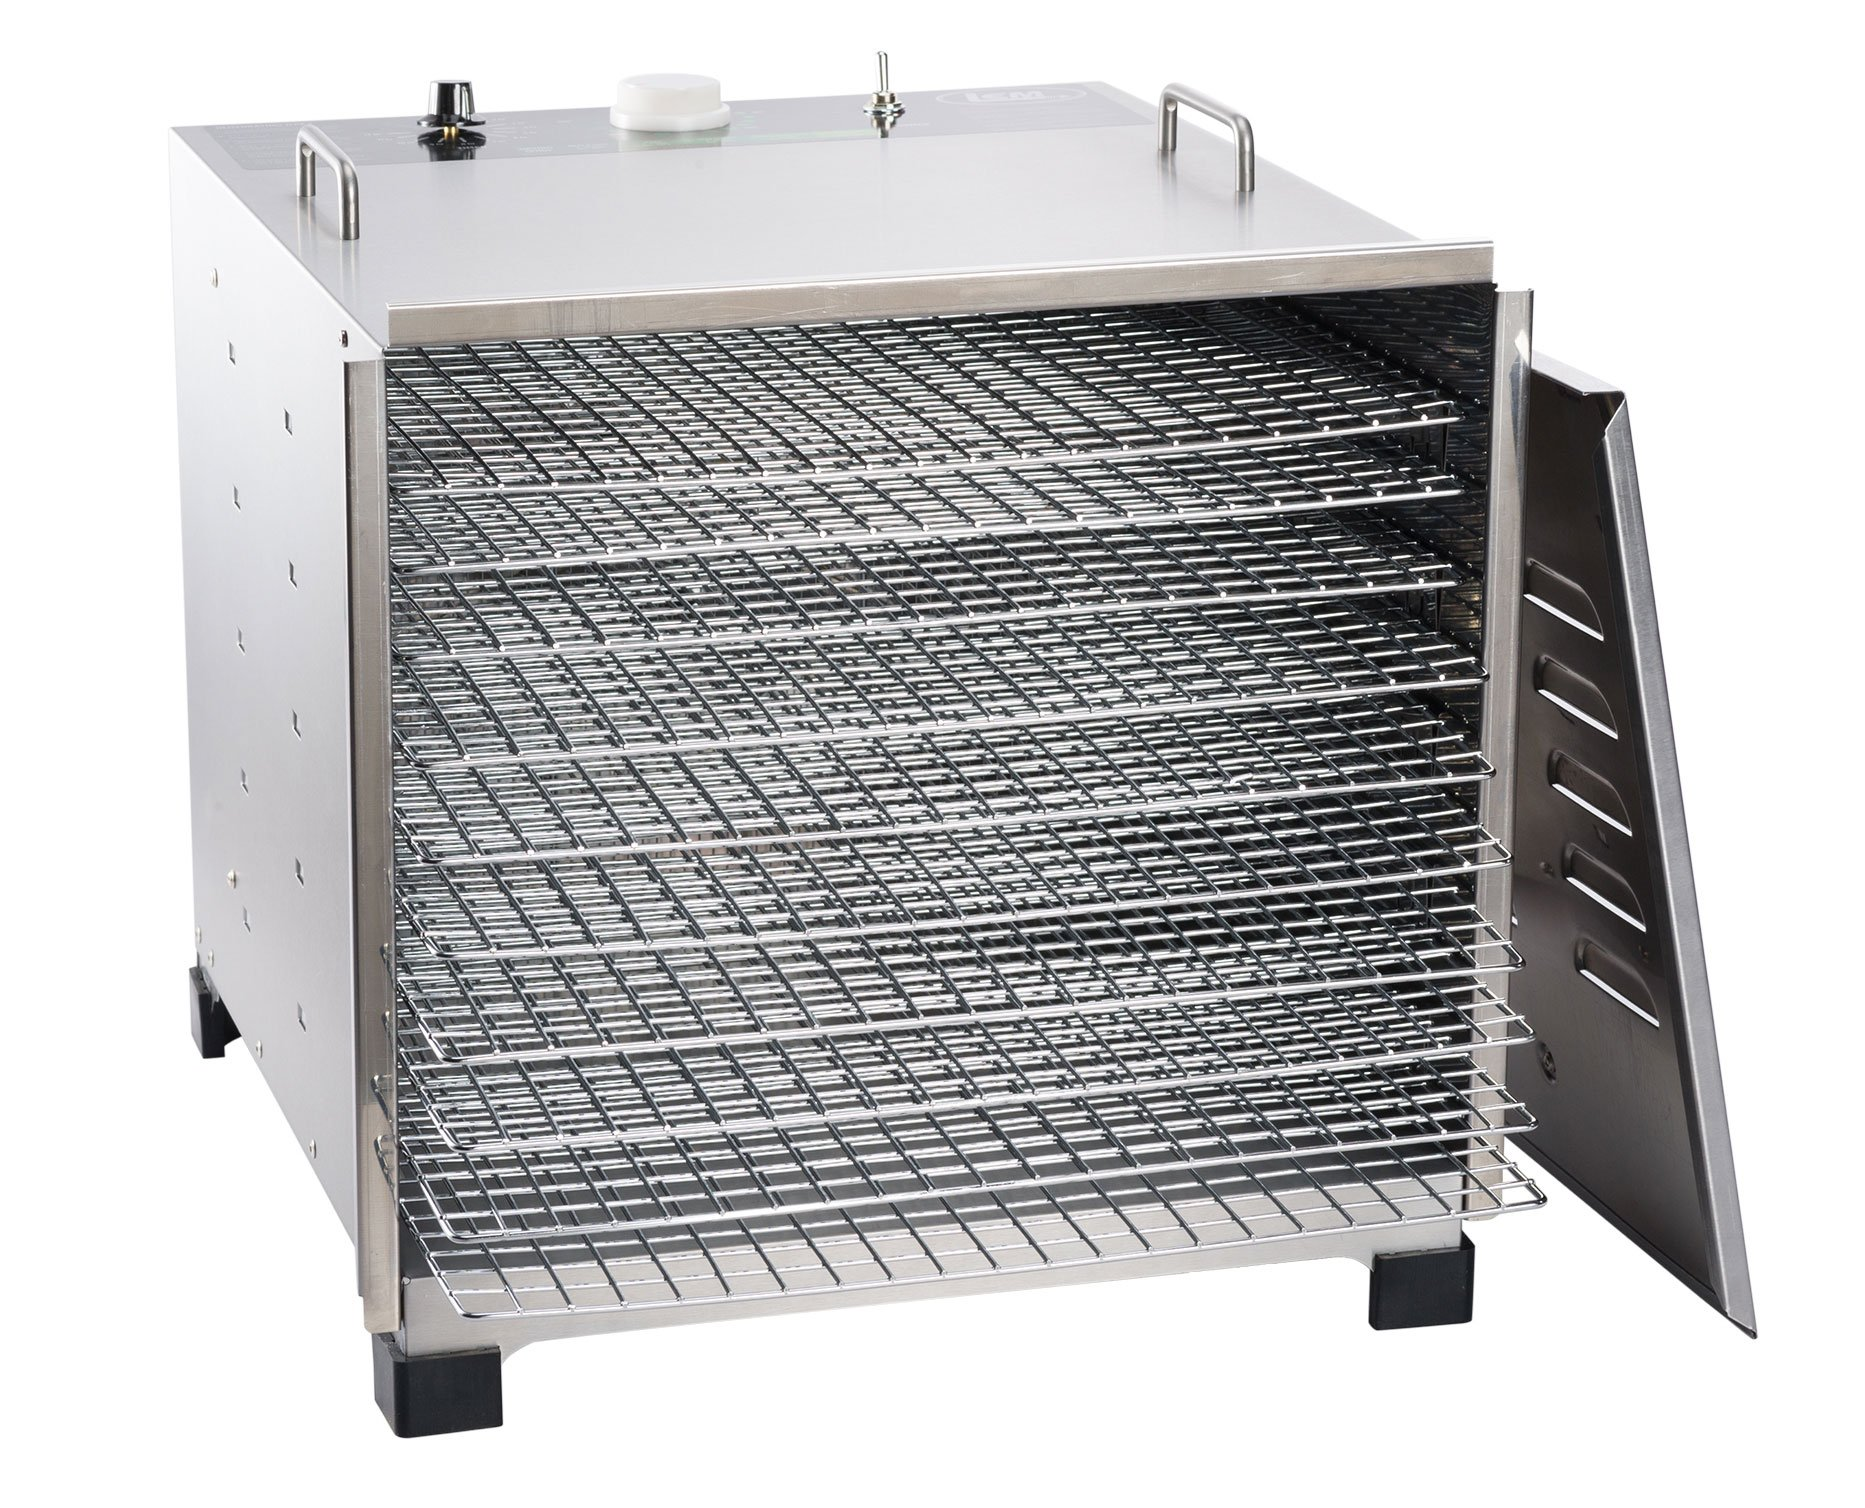 LEM Products 778A Stainless Steel 10 Tray Dehydrator w/ timer by LEM (Image #1)